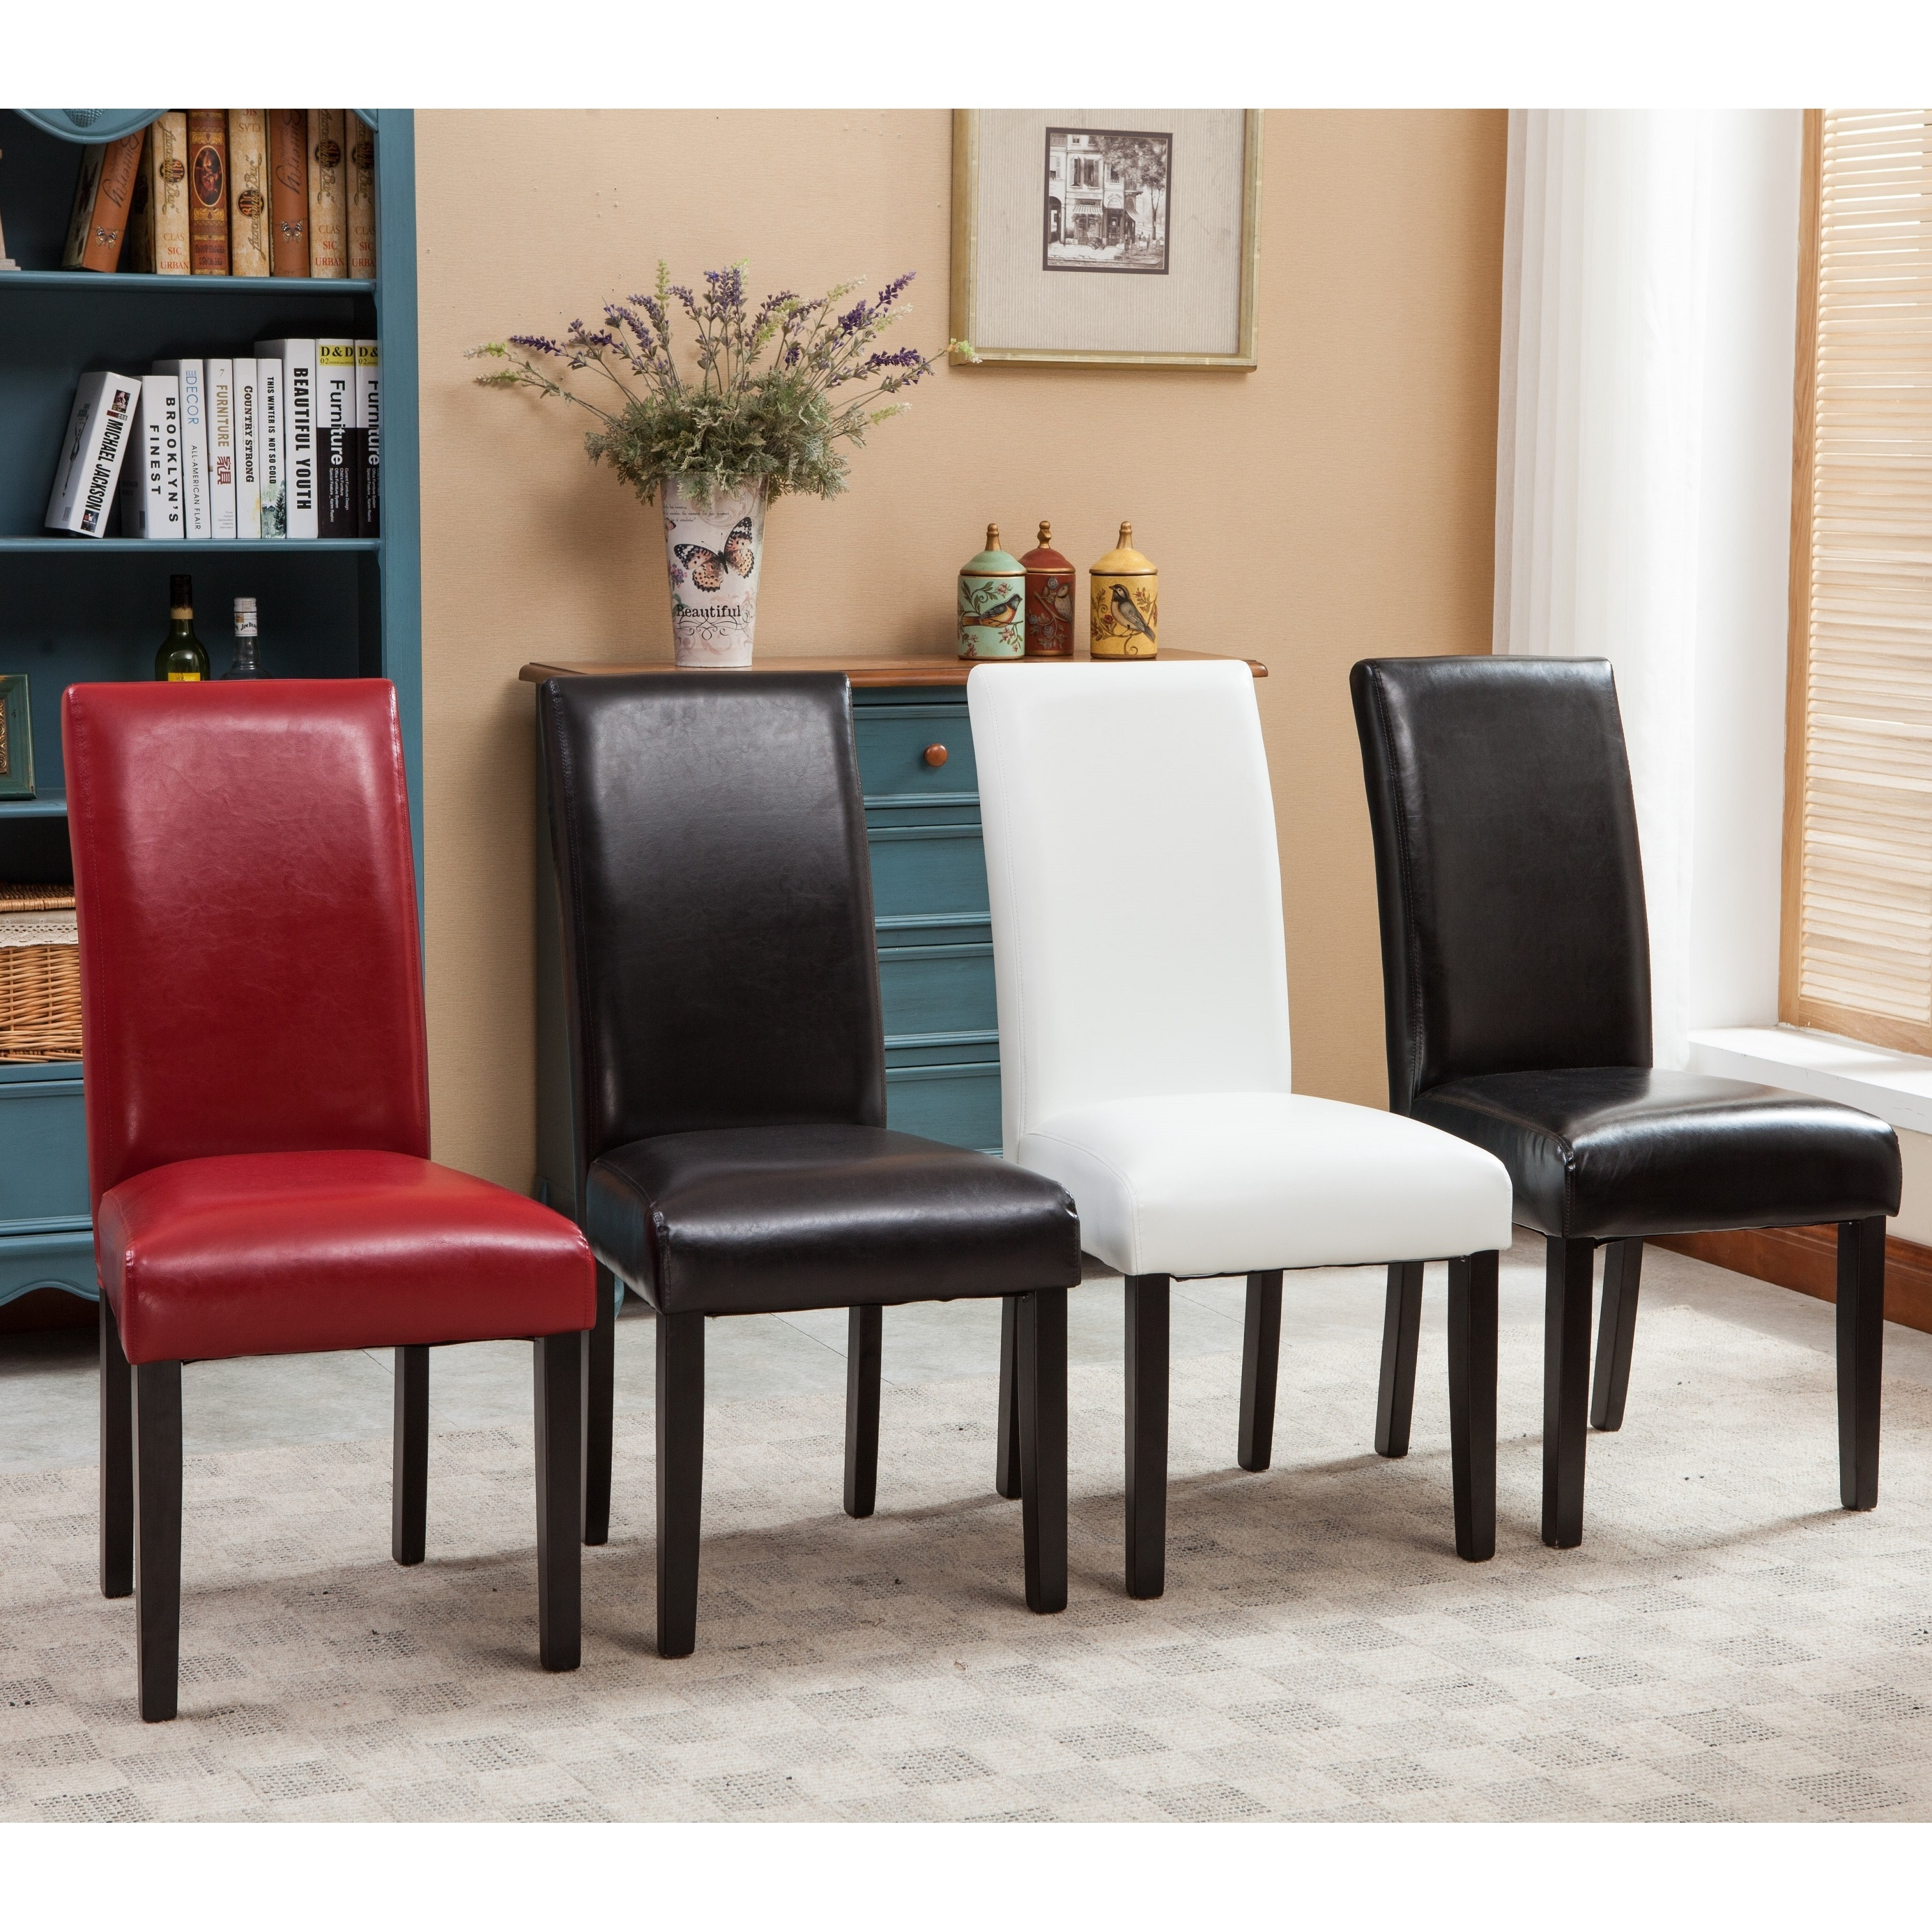 Donatello Urban Style Solid Wood Leatherette Padded Parson Chair (Set of 2)  - Free Shipping Today - Overstock.com - 17915278